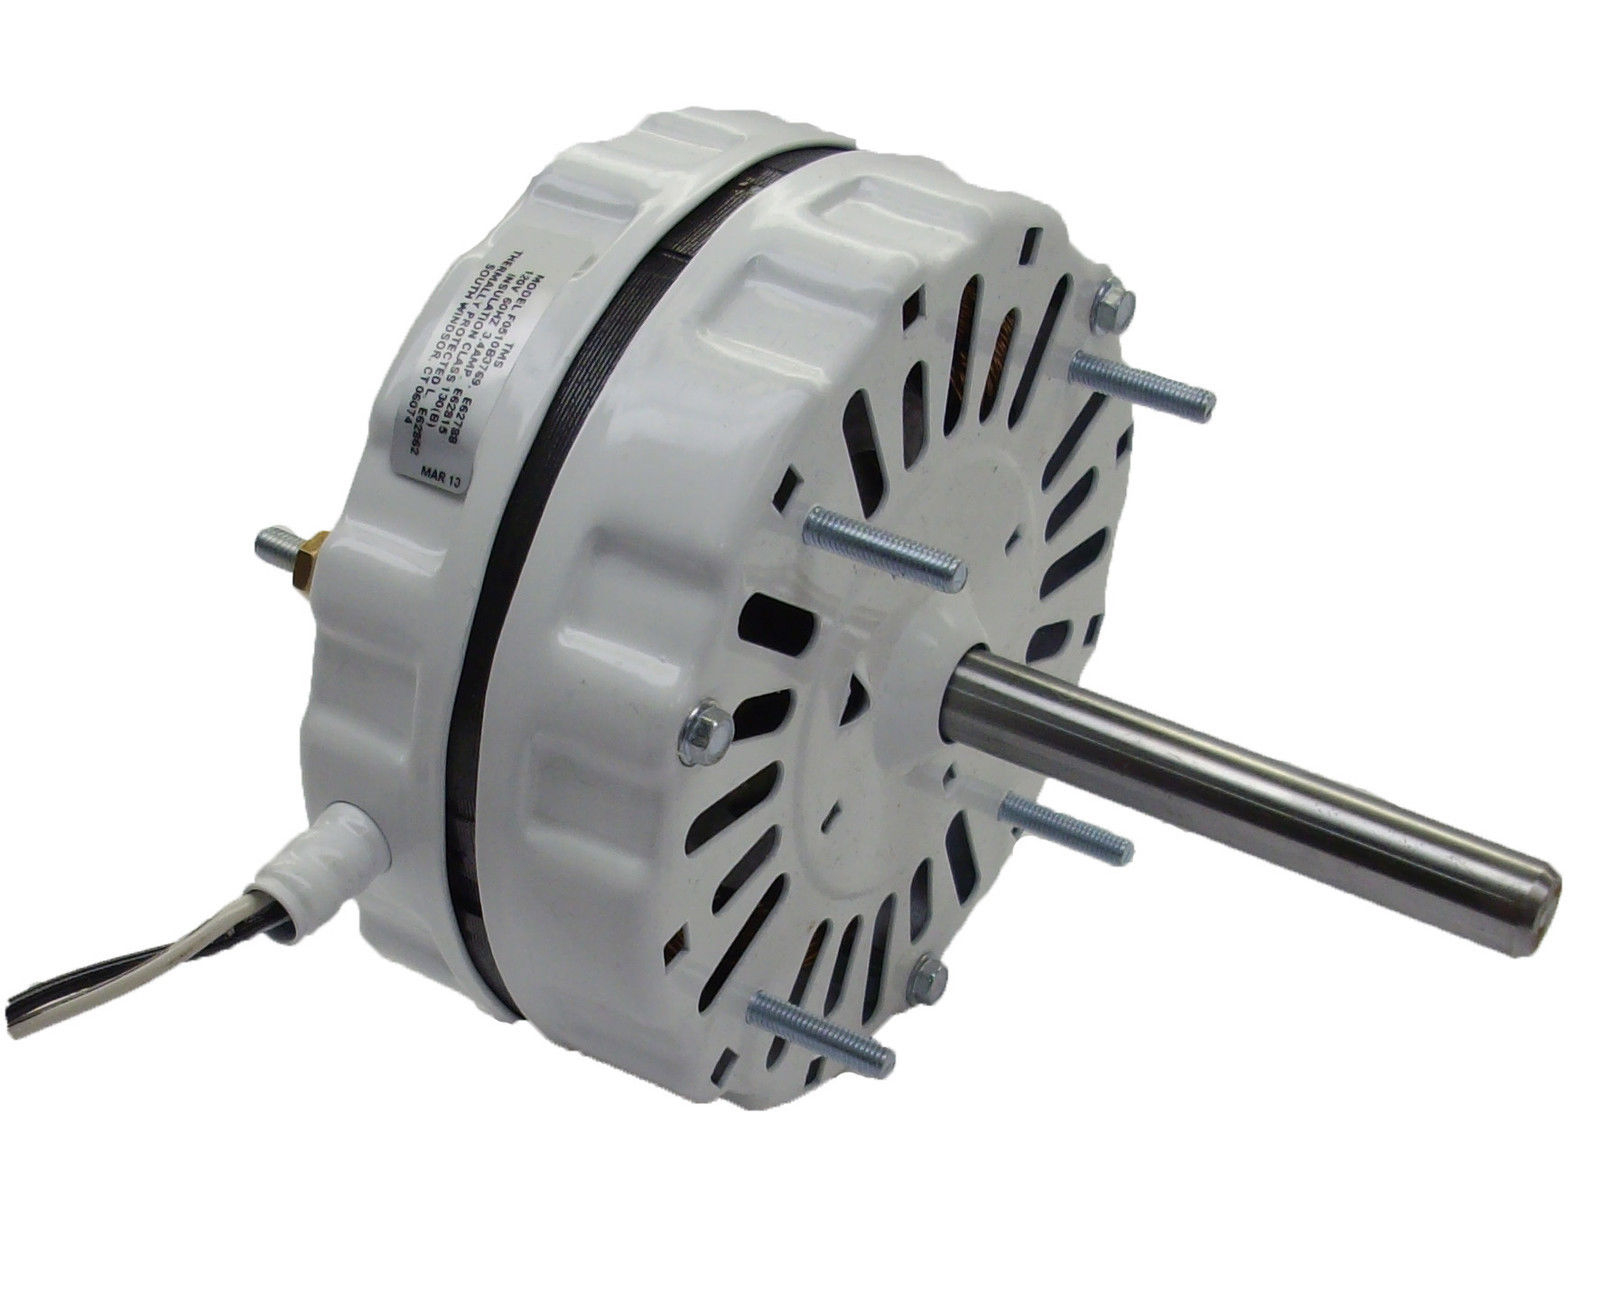 hight resolution of 58 attic fan replacement motor attic fan wiring red black white inside proportions 1600 x 1300